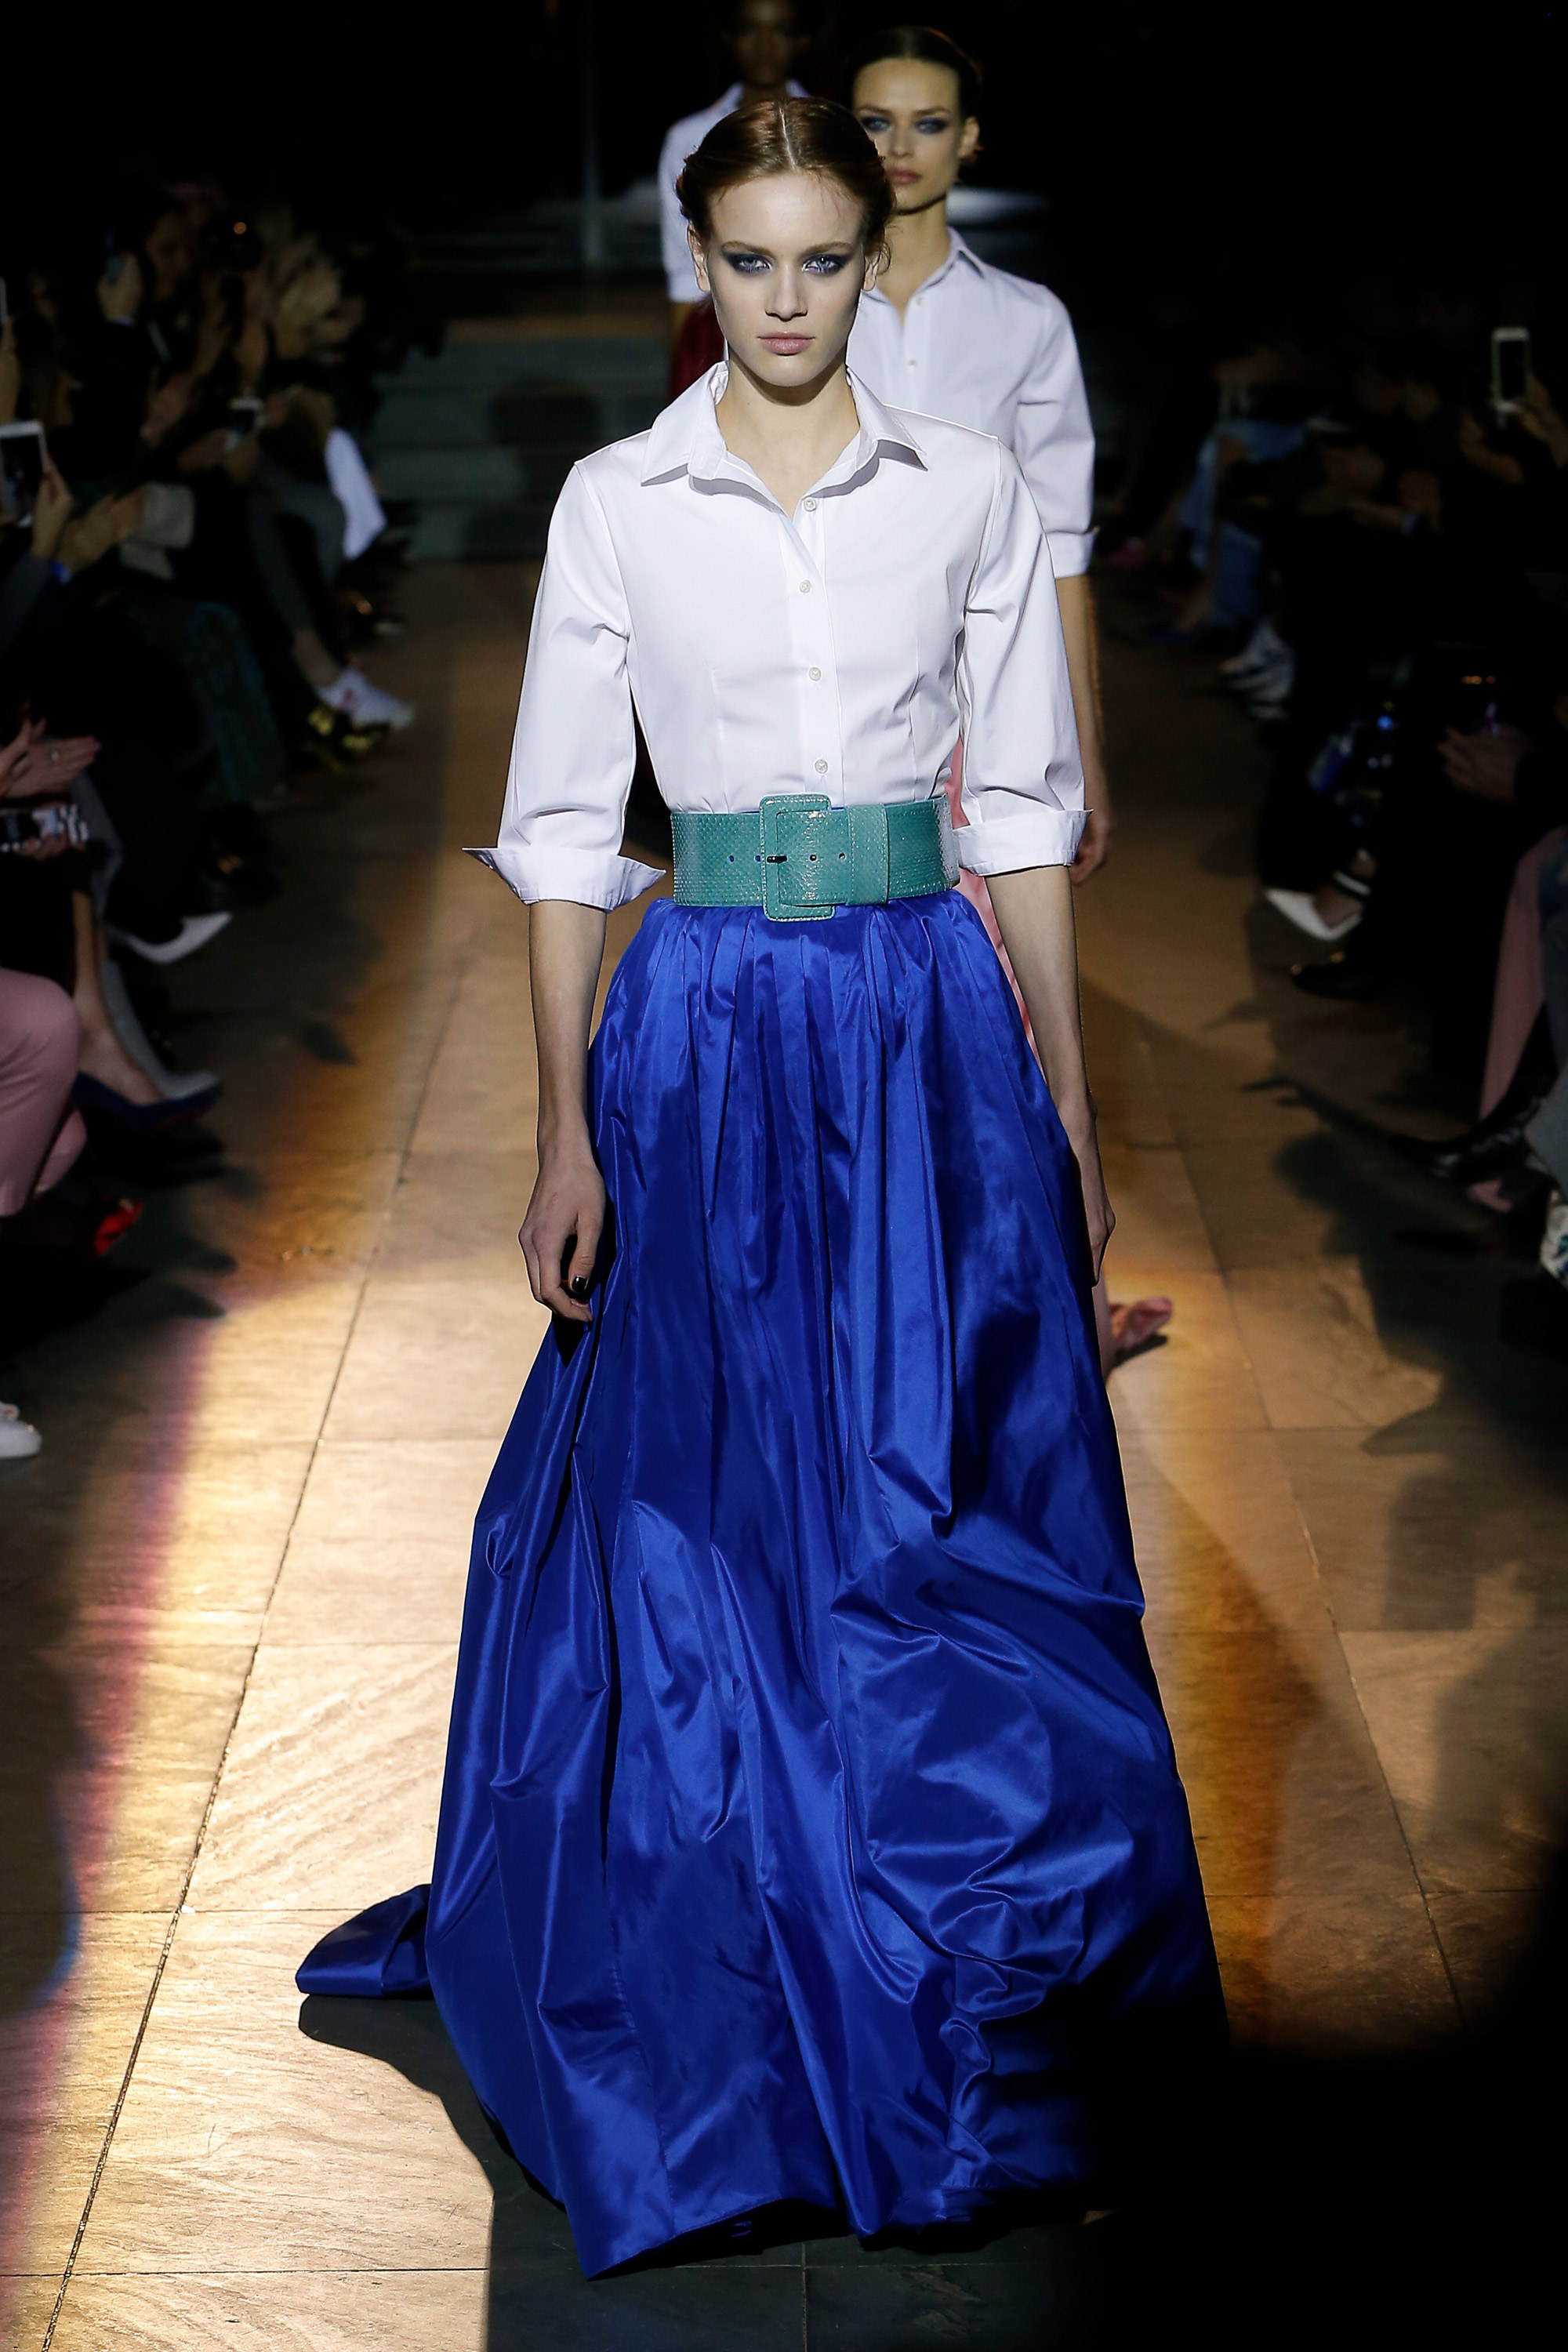 unimpeachable-grace-carolina-herrera-takes-final-bow-fall-2018-collection-new-york-fashion-week-2018